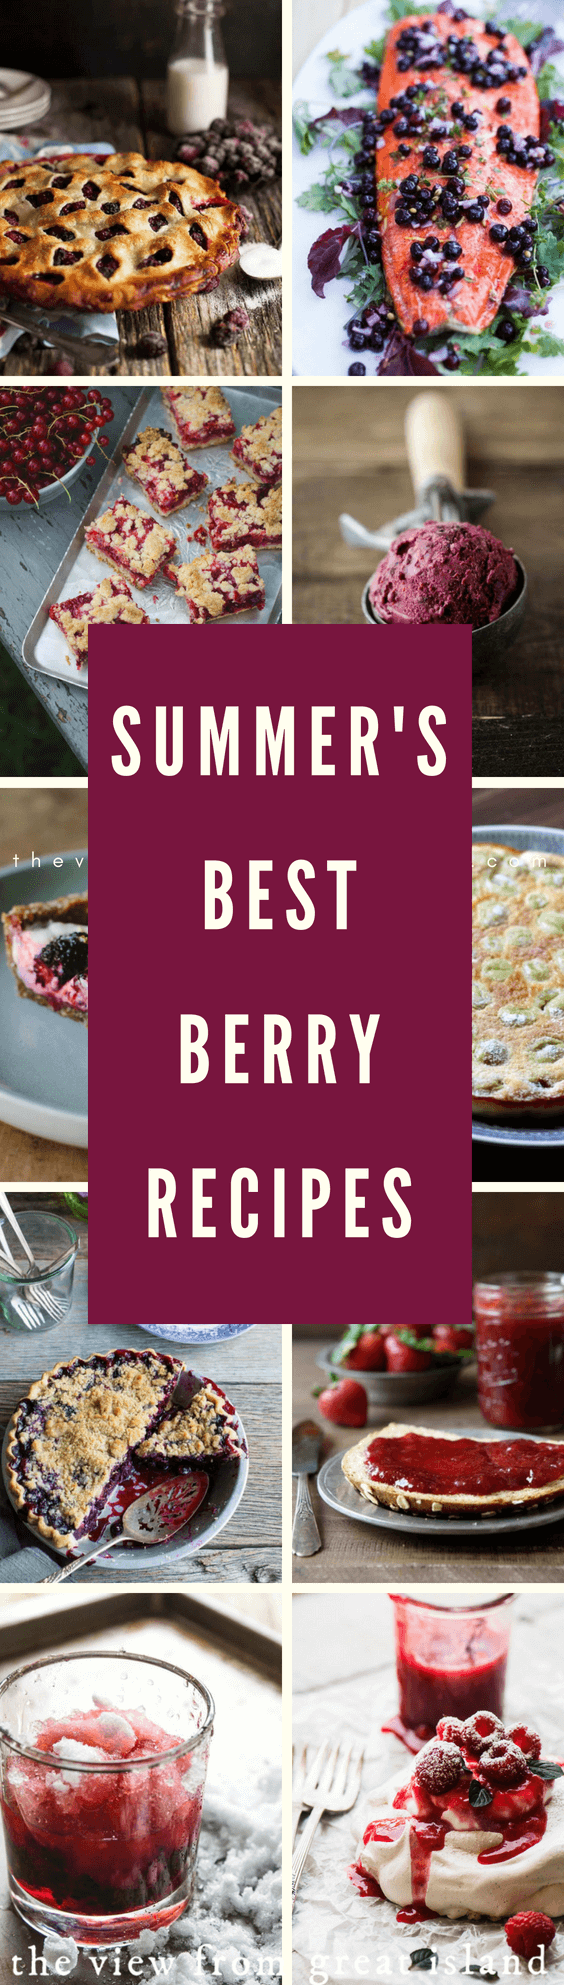 Summer's Best Berry Recipes ~ you've got berries, and I've got the recipes! From strawberries and blueberries to huckleberries, and beyond. #fruit #dessert #berries #strawberries #blackberries #blueberries #huckleberries #raspberries #ollalieberries #blackraspberries